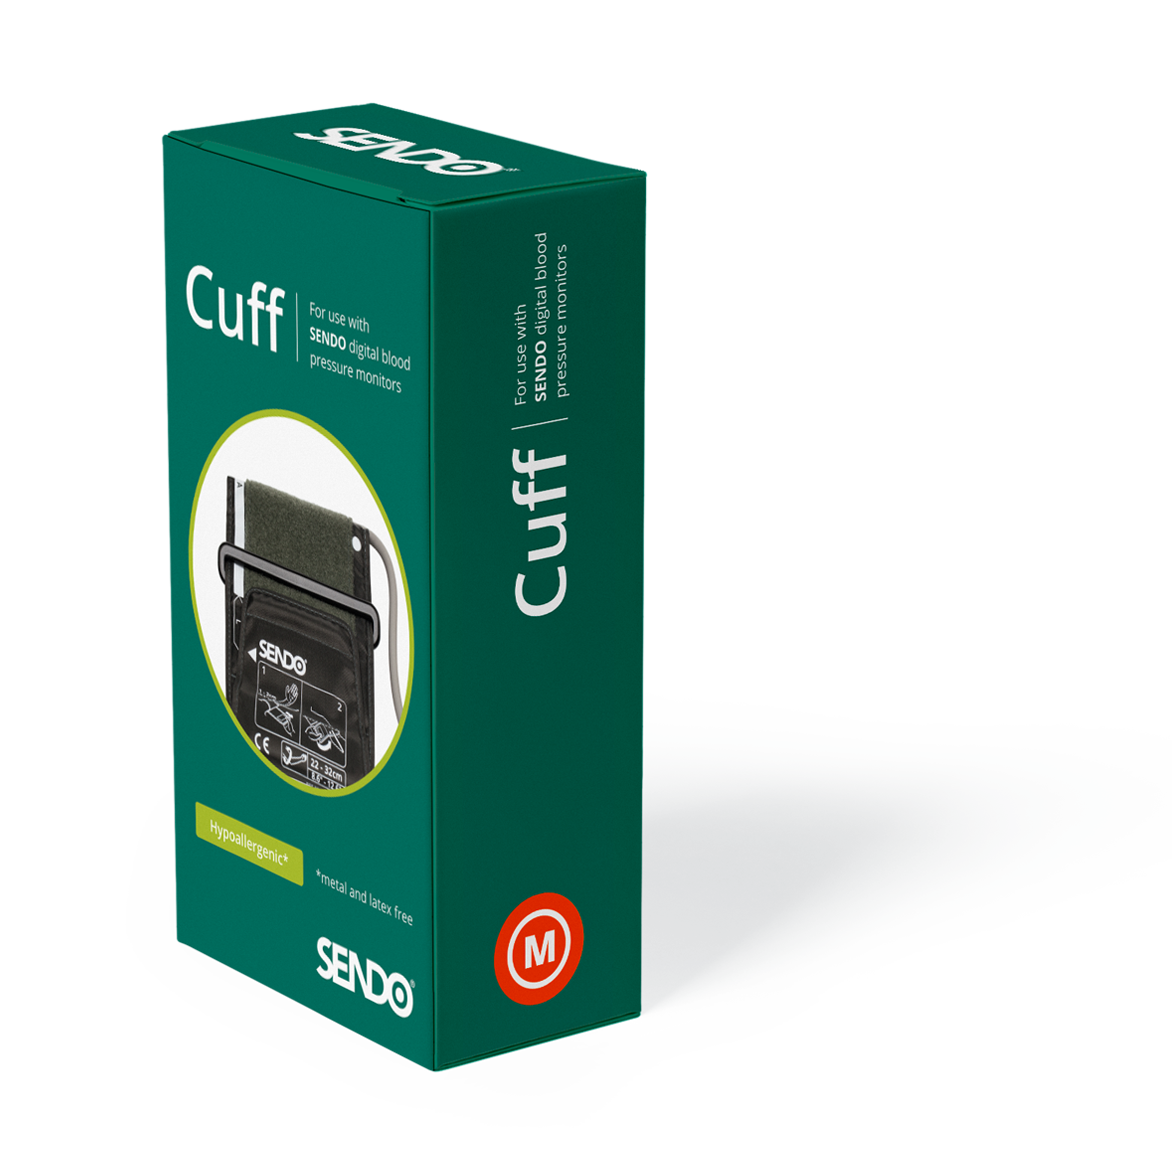 Cuff for Blood Pressure Monitors - size М